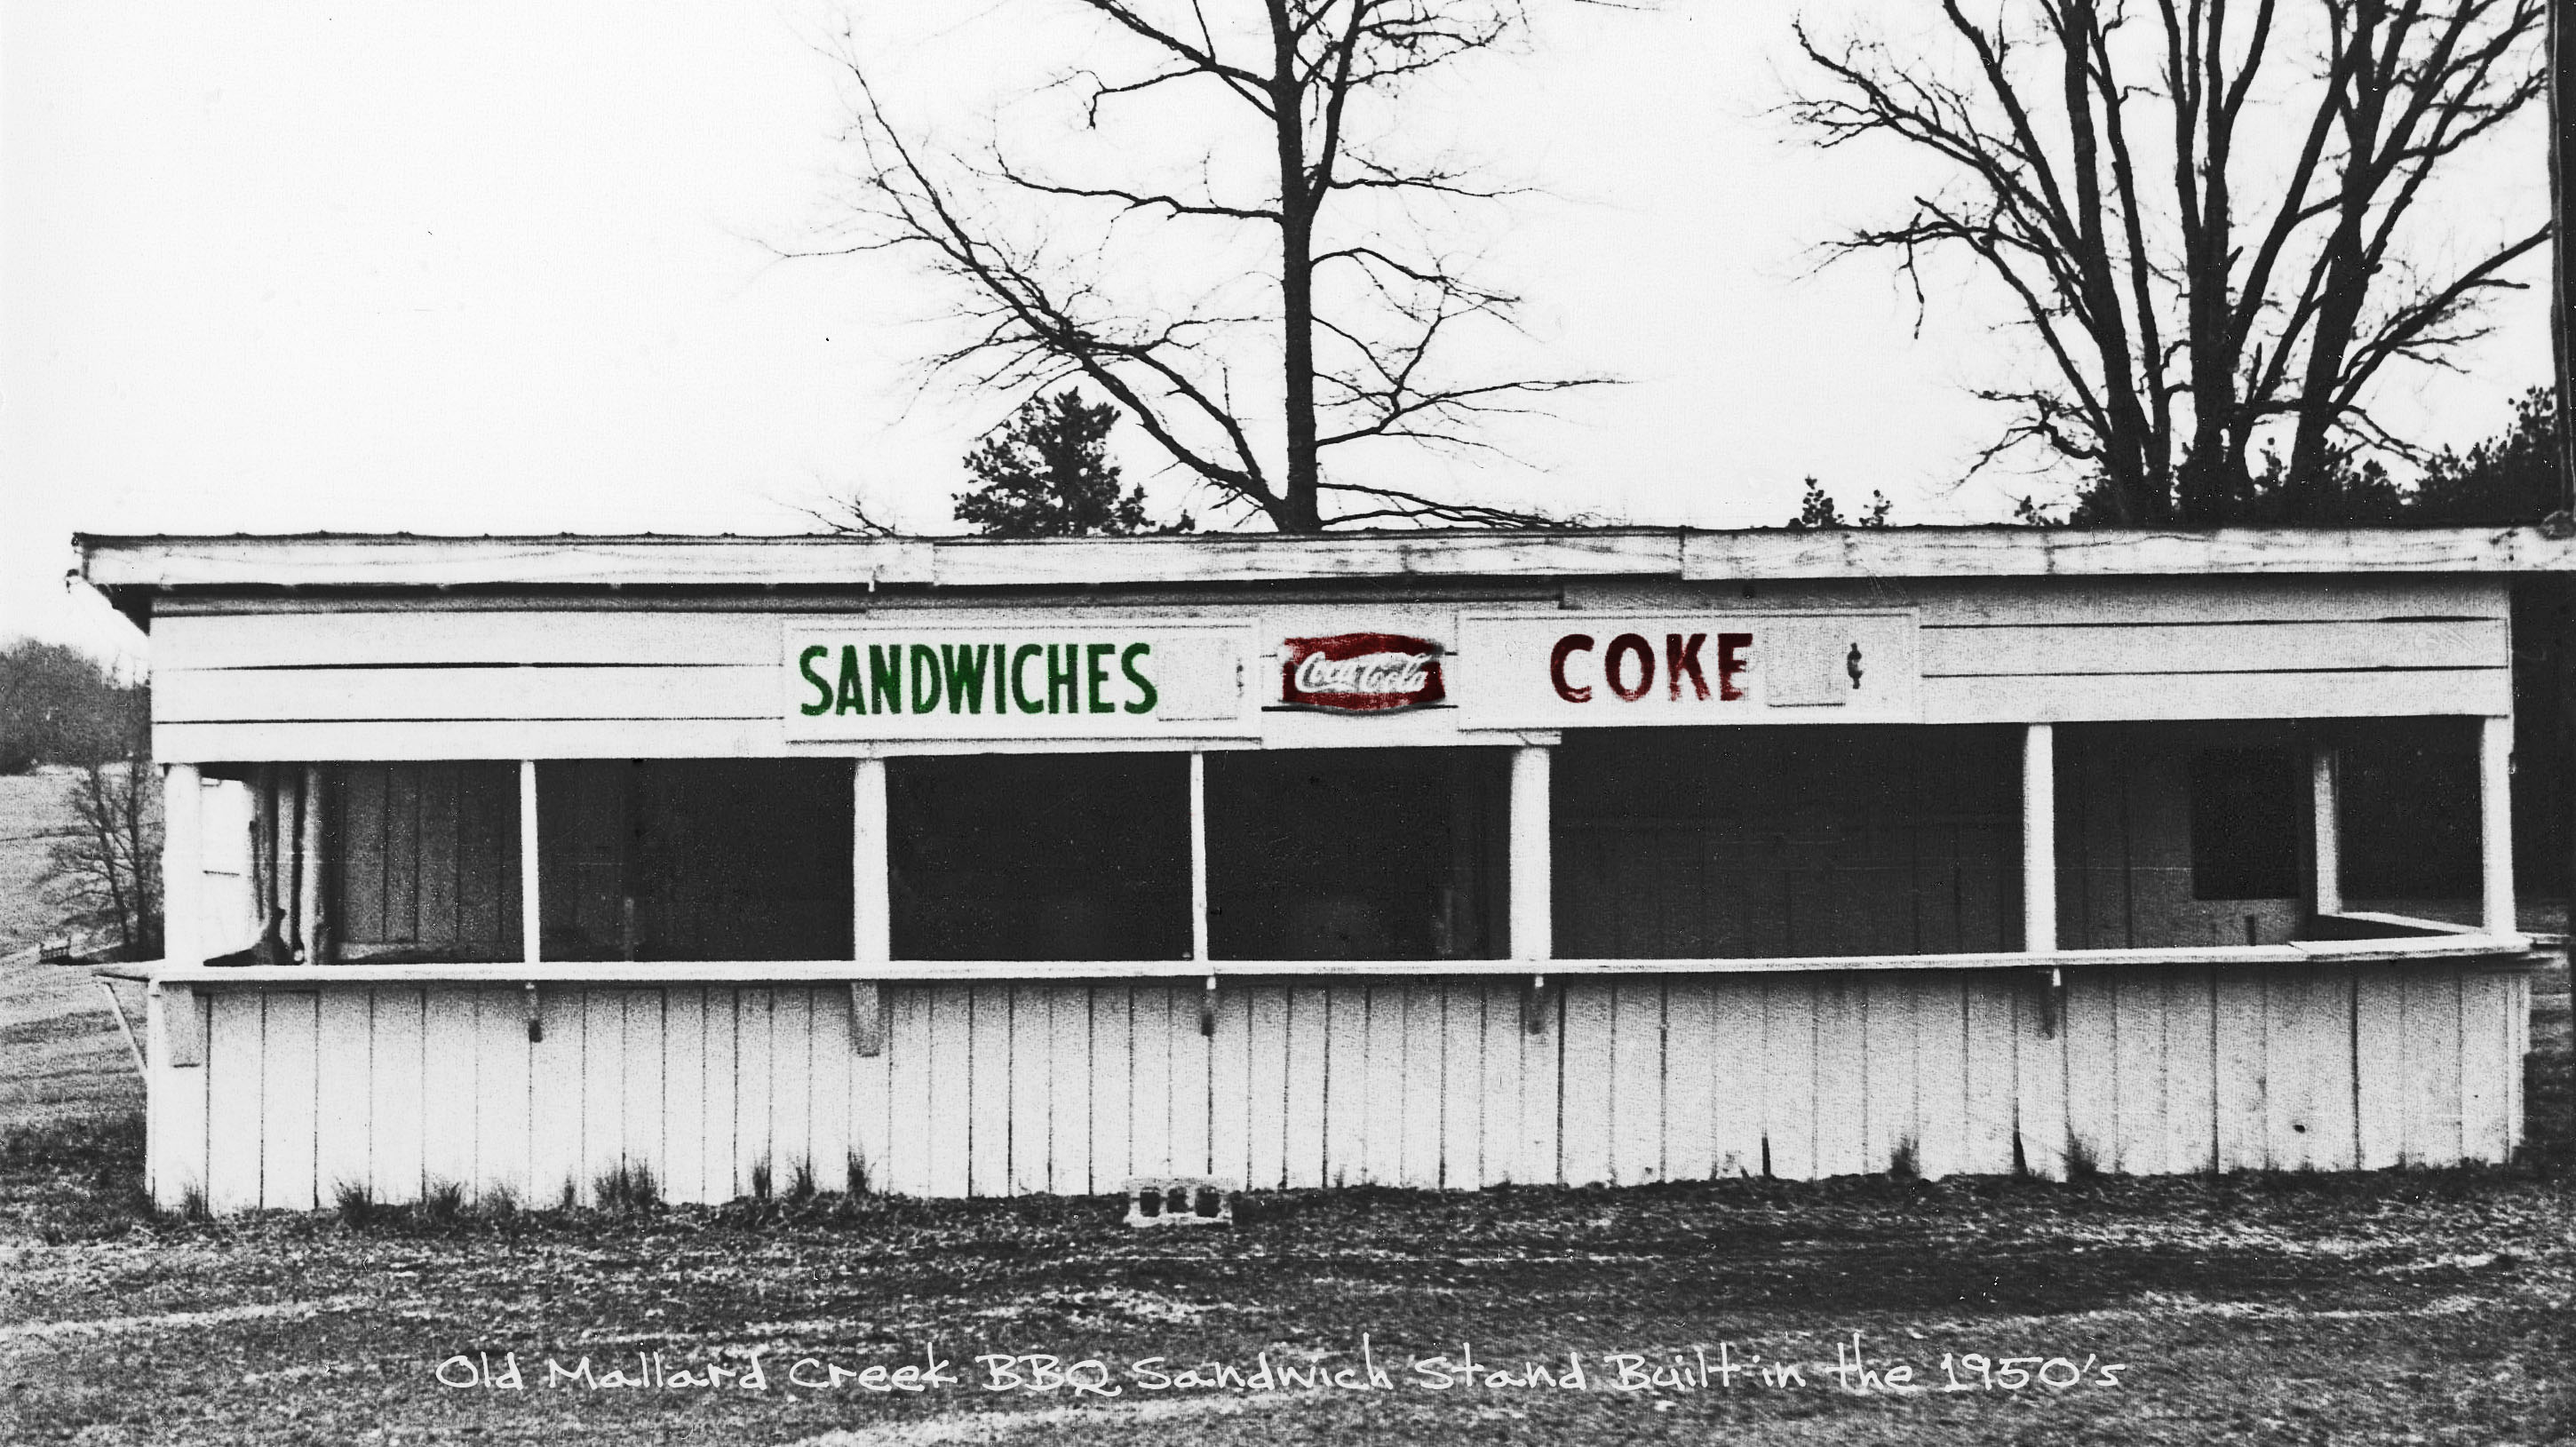 Sandwich Stand 1979126 edit 3 color w date